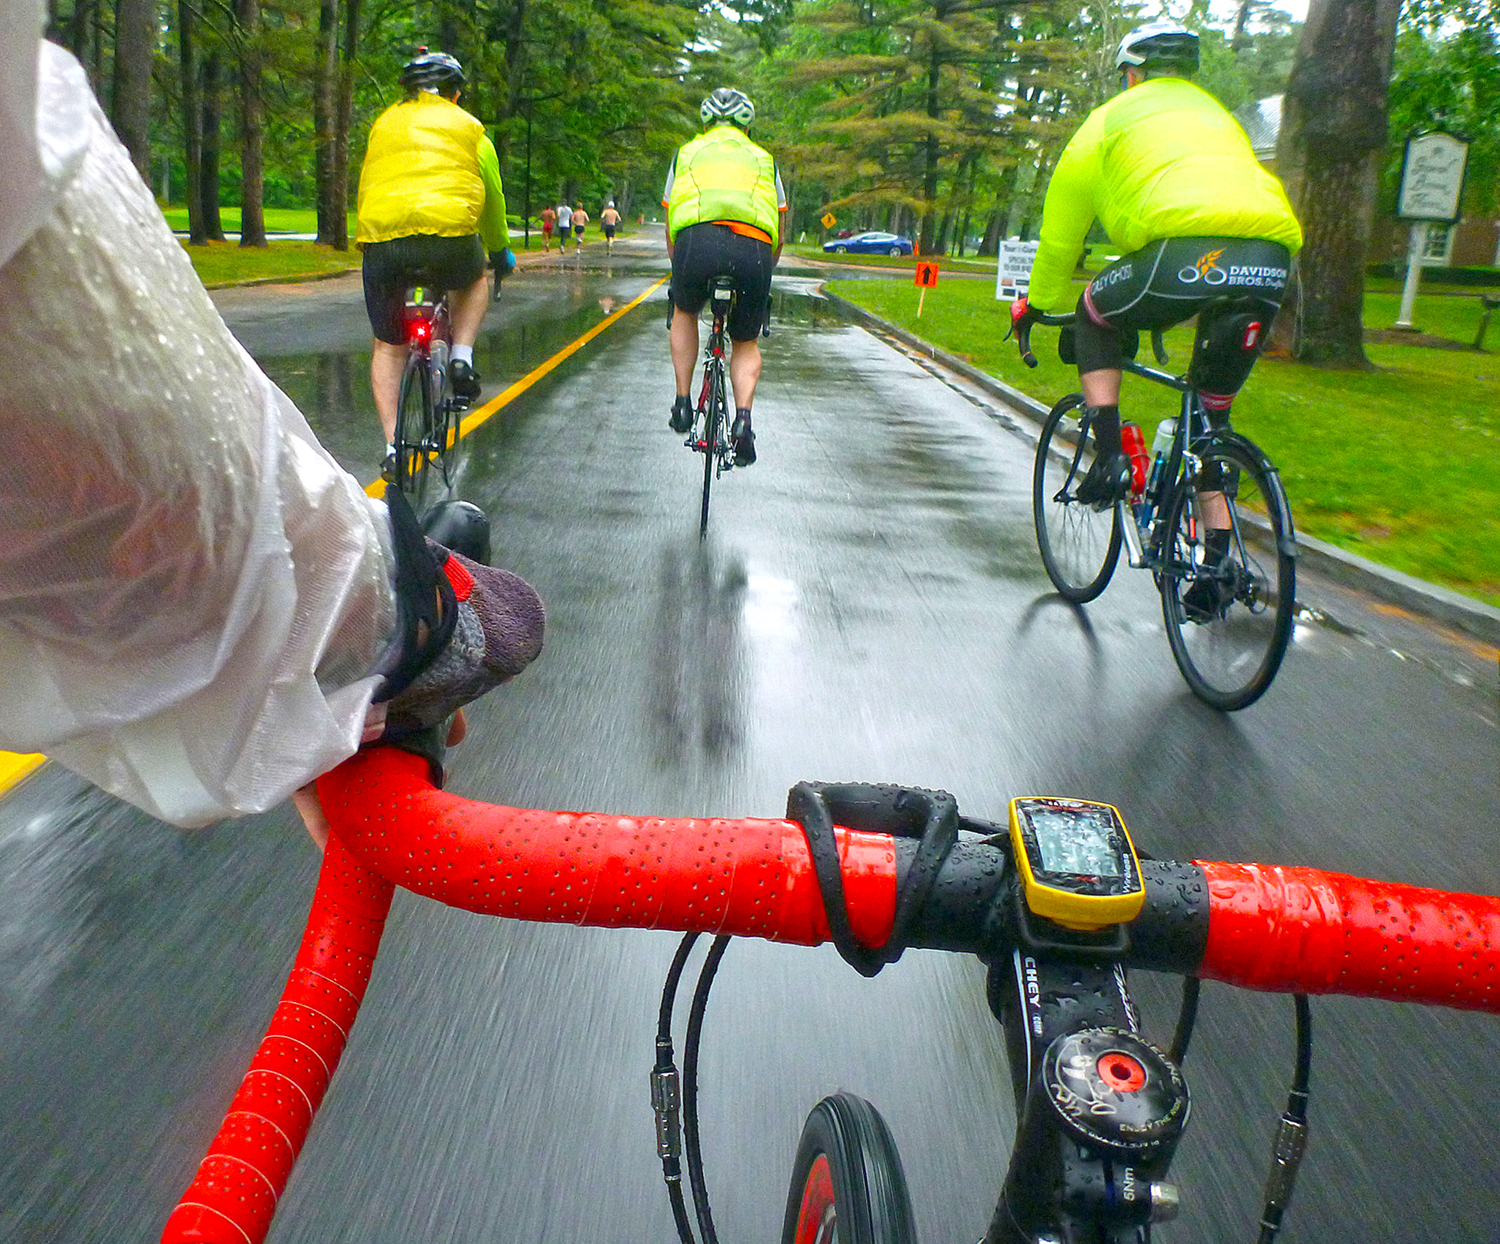 Bright, visible clothing is an important safety item, especially when riding in bad weather. These riders were riding in the Tour de Cure.  Dave Kraus